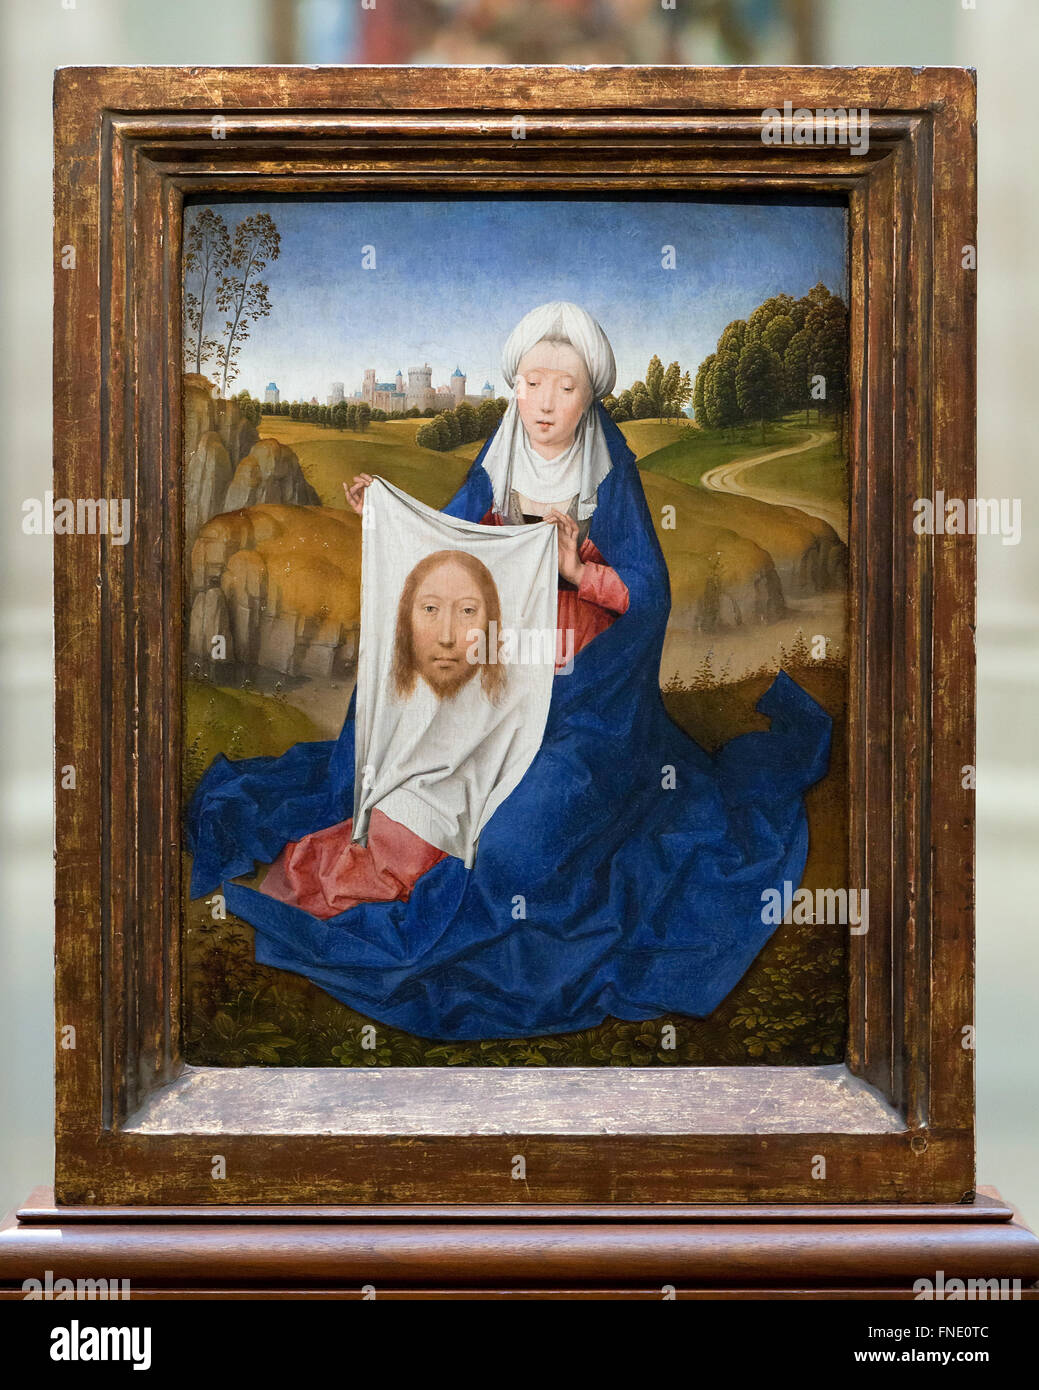 Saint Veronica (obverse) by Hans Memling, circa 1470 - Stock Image